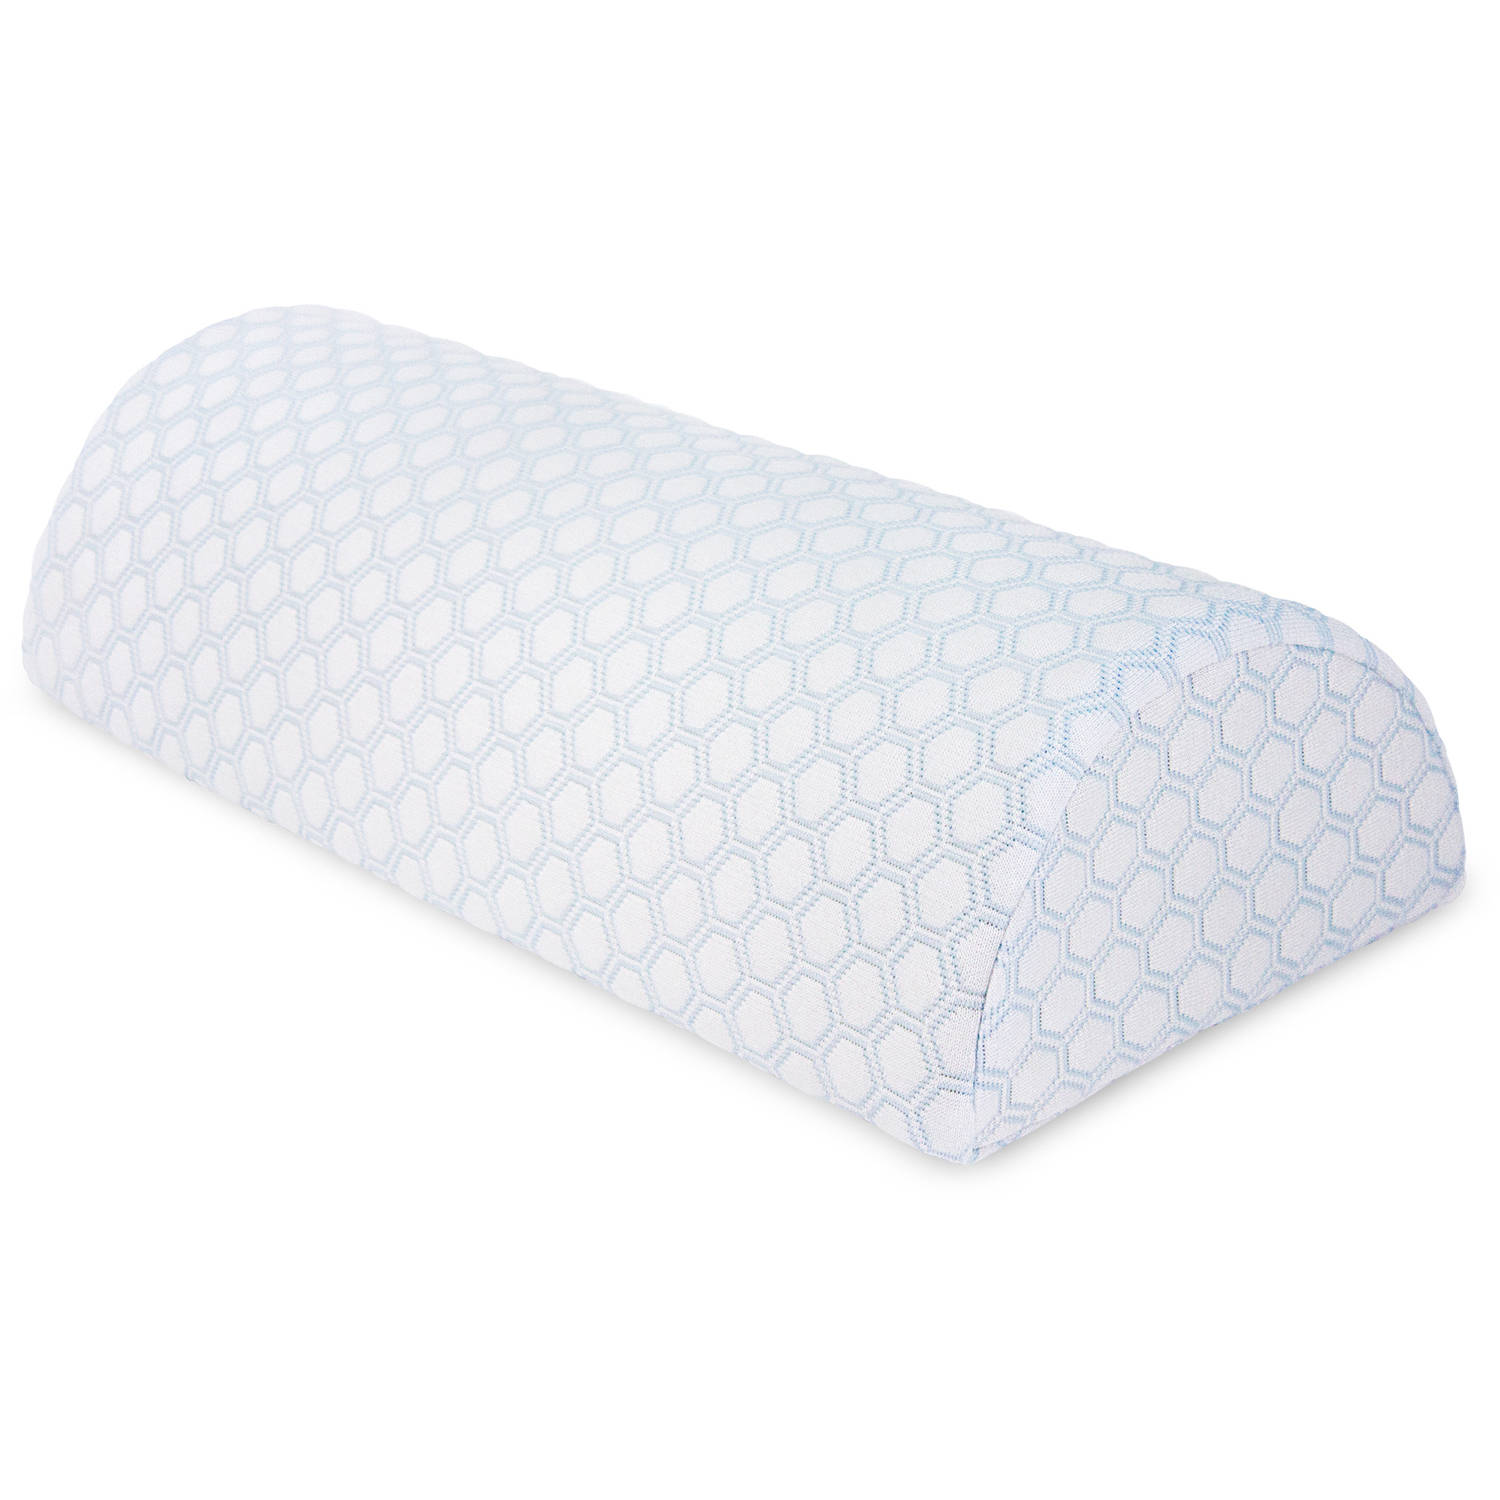 BioPEDIC Classic Any Position Support Pillow